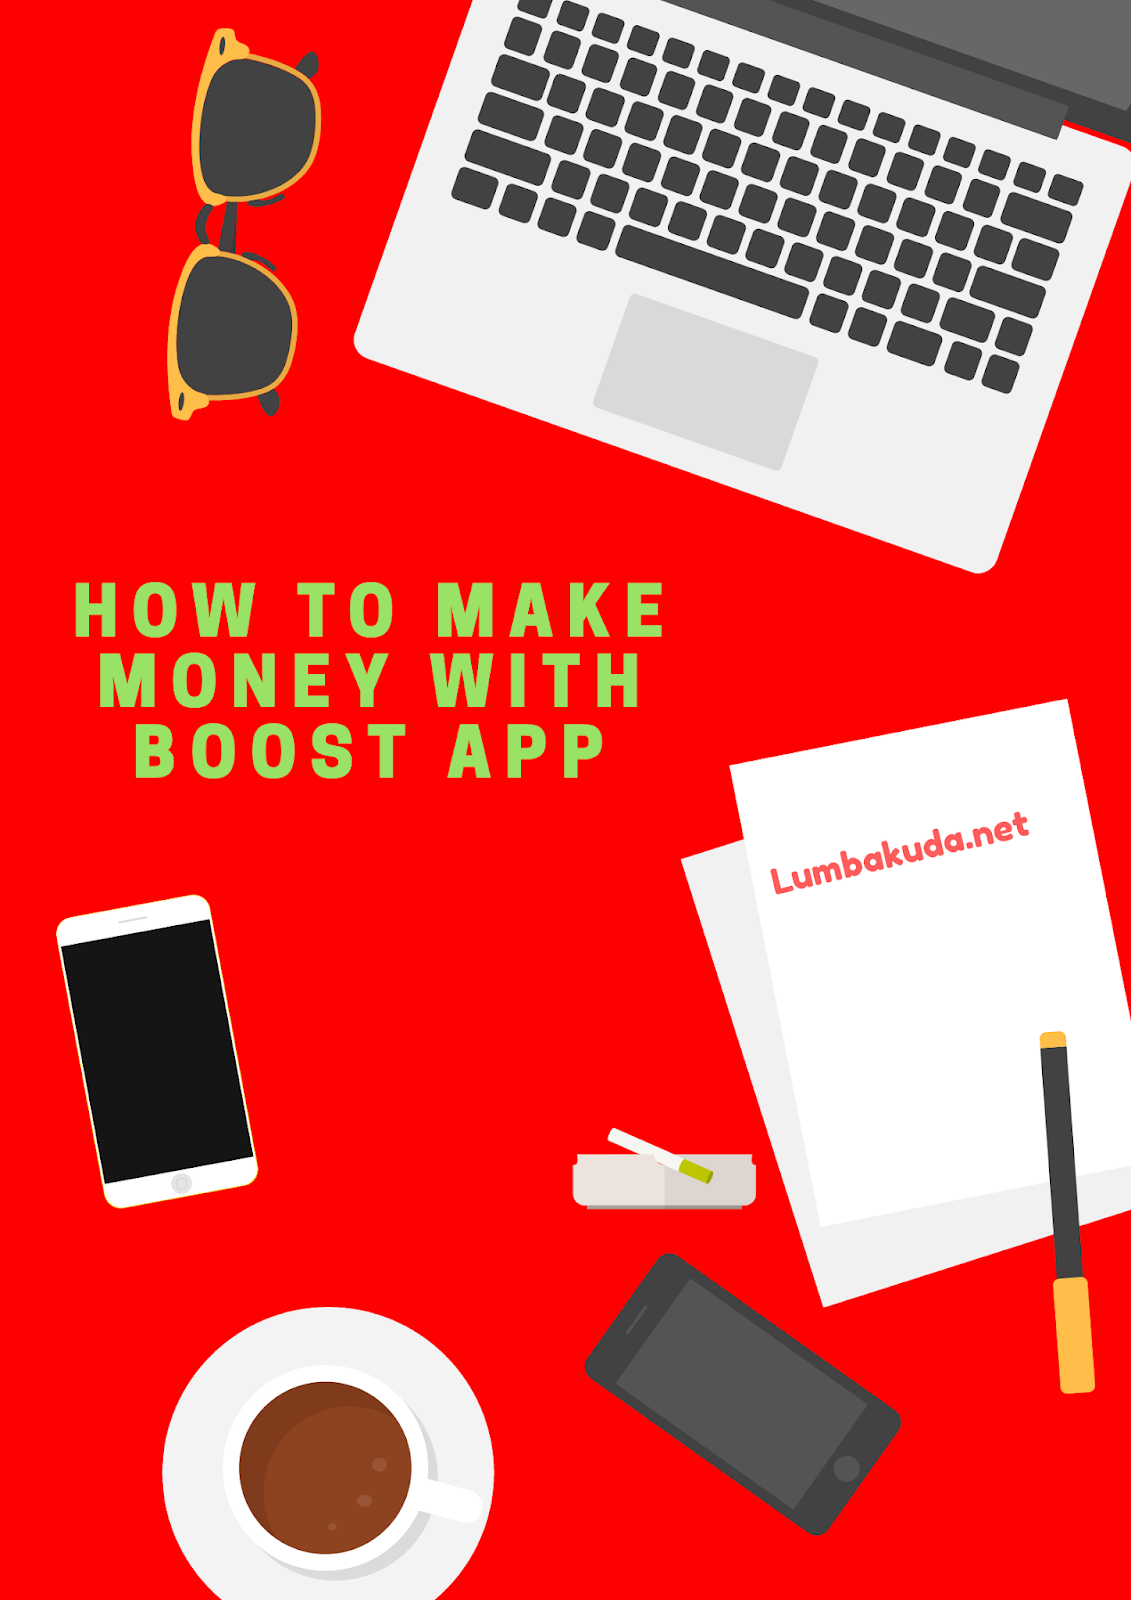 How to make money with Boost App 2019 |  Net in 2019 | How to make